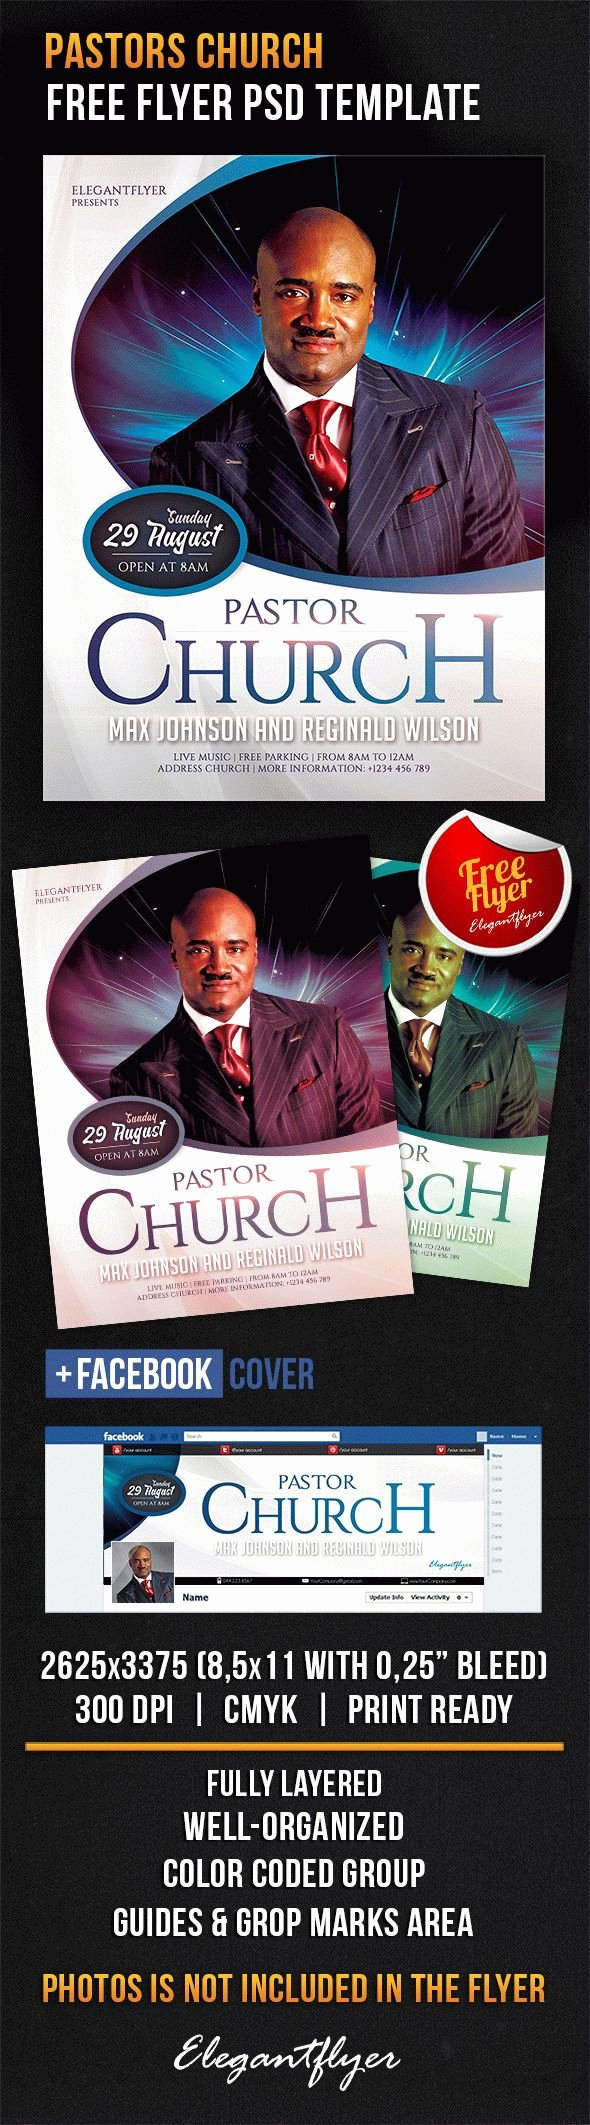 Free Church Flyer Templates Psd Inspirational Pastors Church – Free Flyer Psd Template – by Elegantflyer